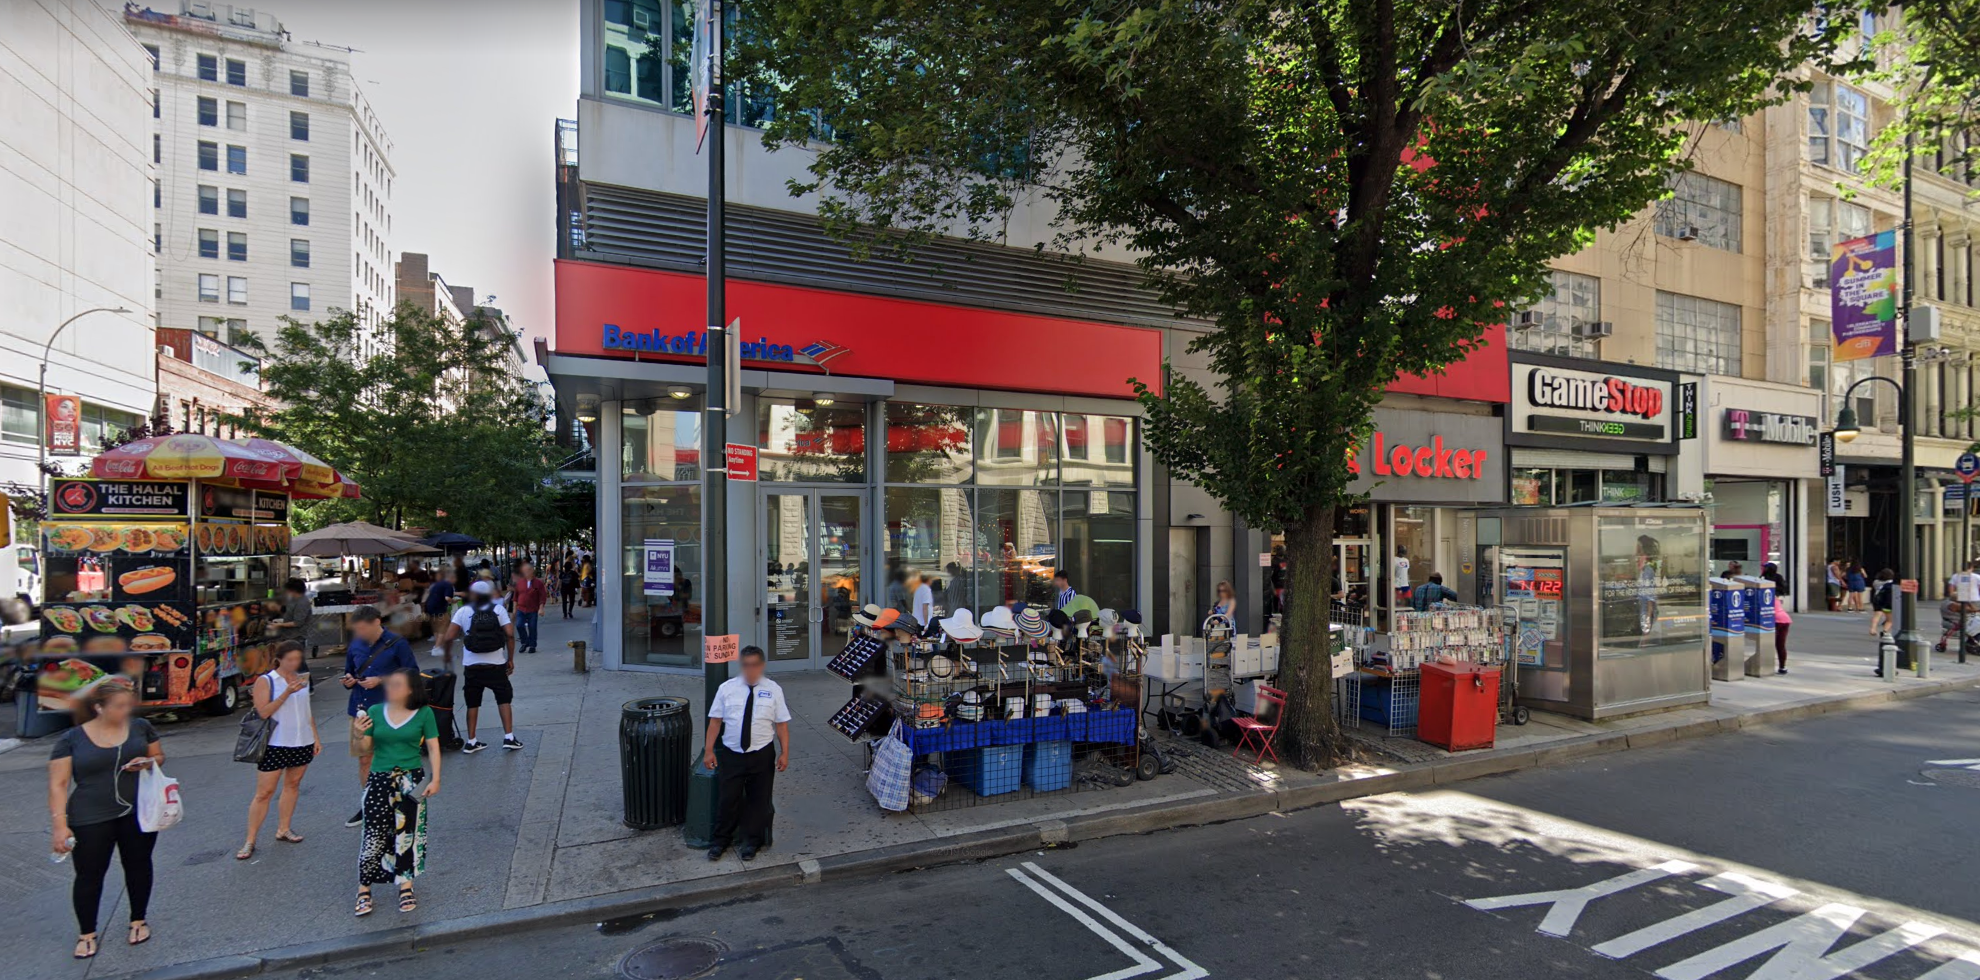 Bank of America financial center with walk-up ATM | 36 E 14th St, New York, NY 10003